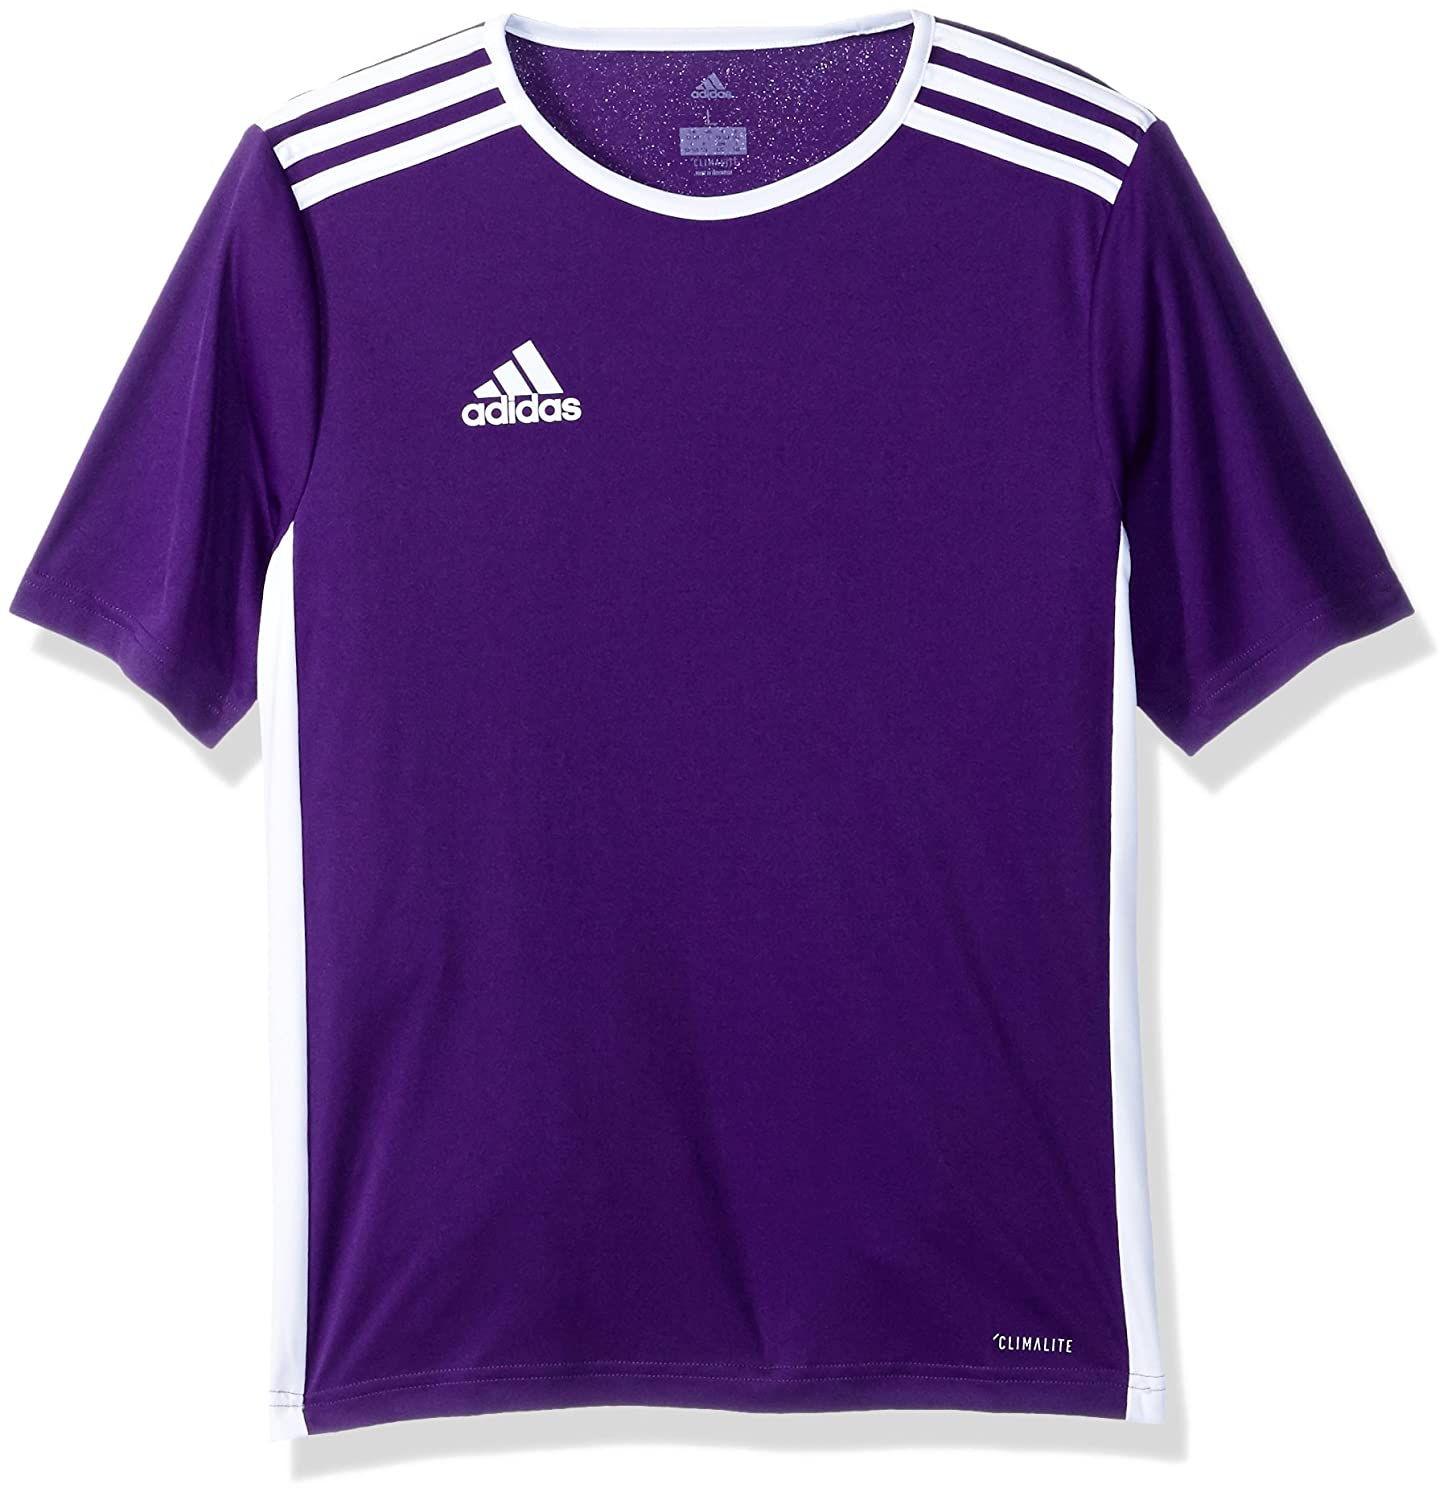 Adidas エントラーダジャージー 男子用 サッカー 18。 B072RCFRNR Medium|Core Purple Core Purple Medium